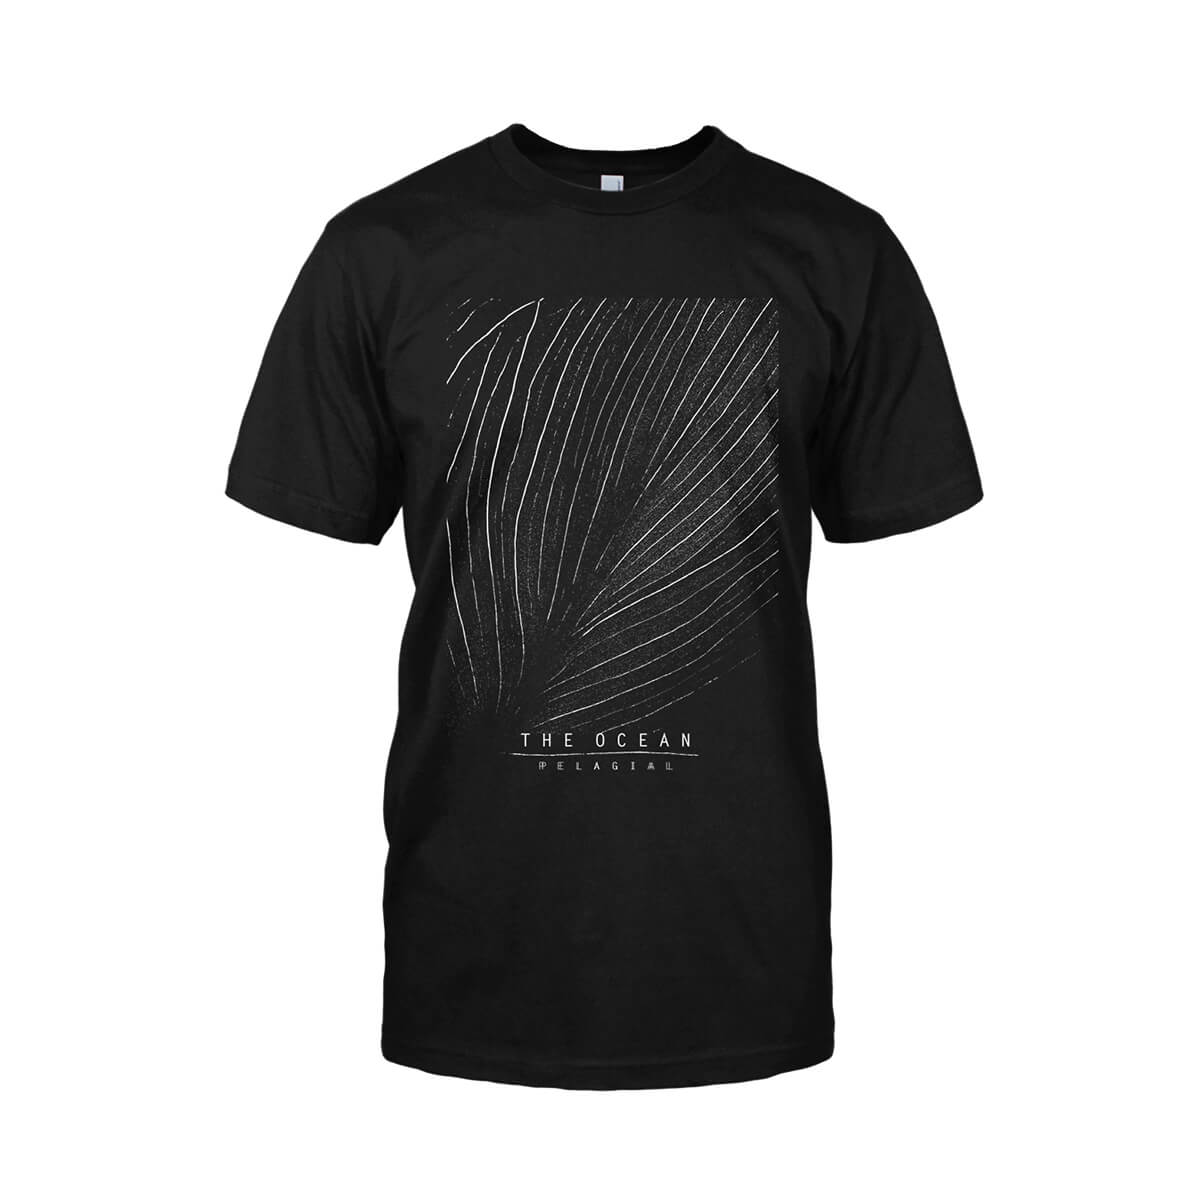 THE OCEAN // PELAGIAL SEAFLOOR BLACK T-SHIRT - Wild Thing Records